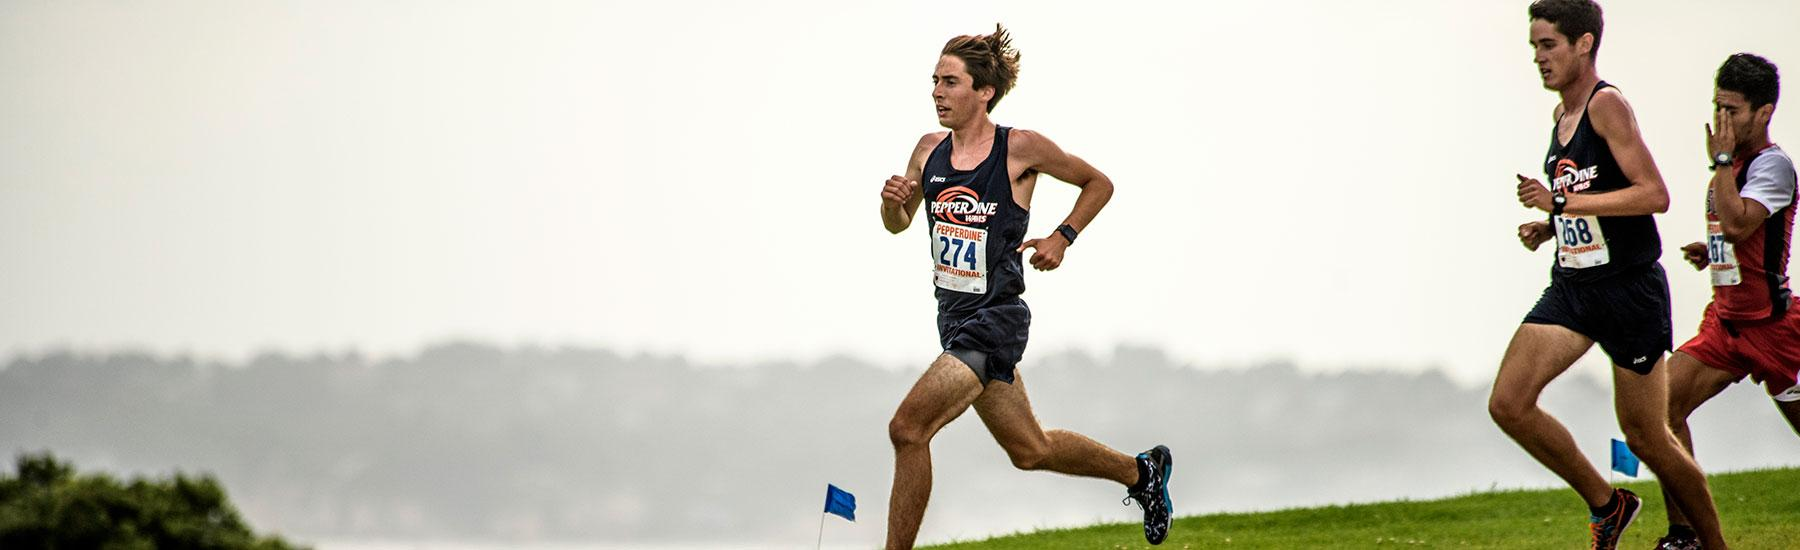 Men's Cross Country runner